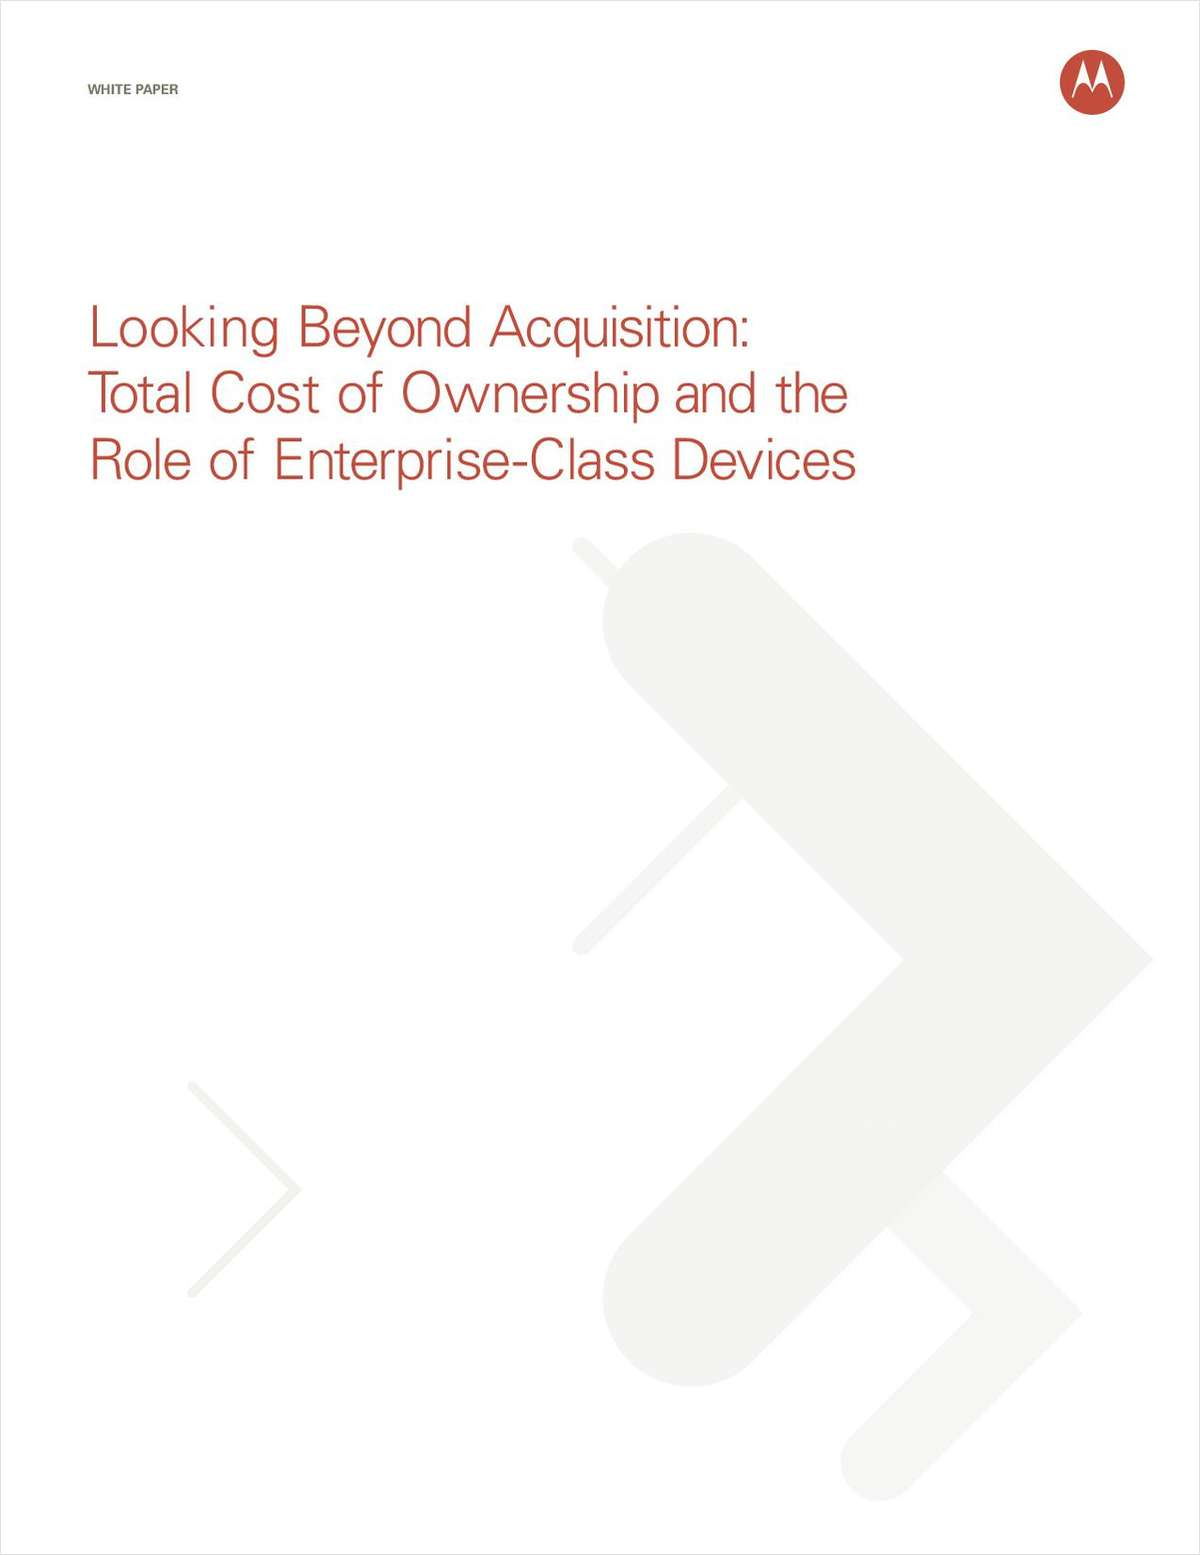 Looking Beyond Acquisition: Total Cost of Ownership and the Role of Enterprise-Class Devices